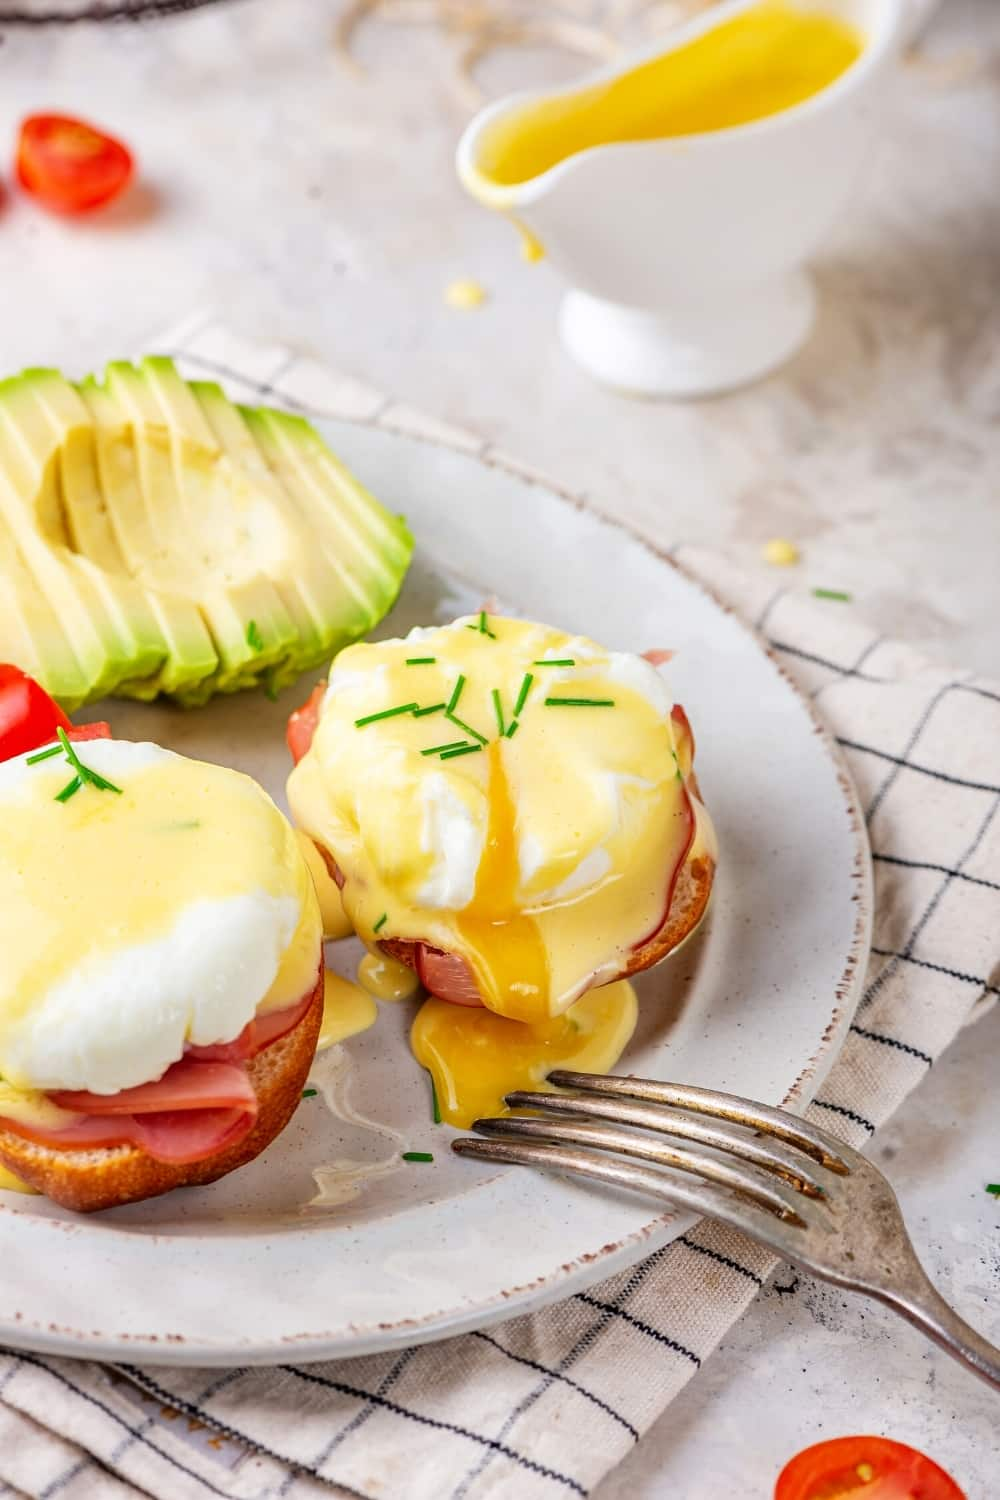 A white plate with two eggs Benedict on it. A sliced avocado is on the plate behind the eggs benedict.